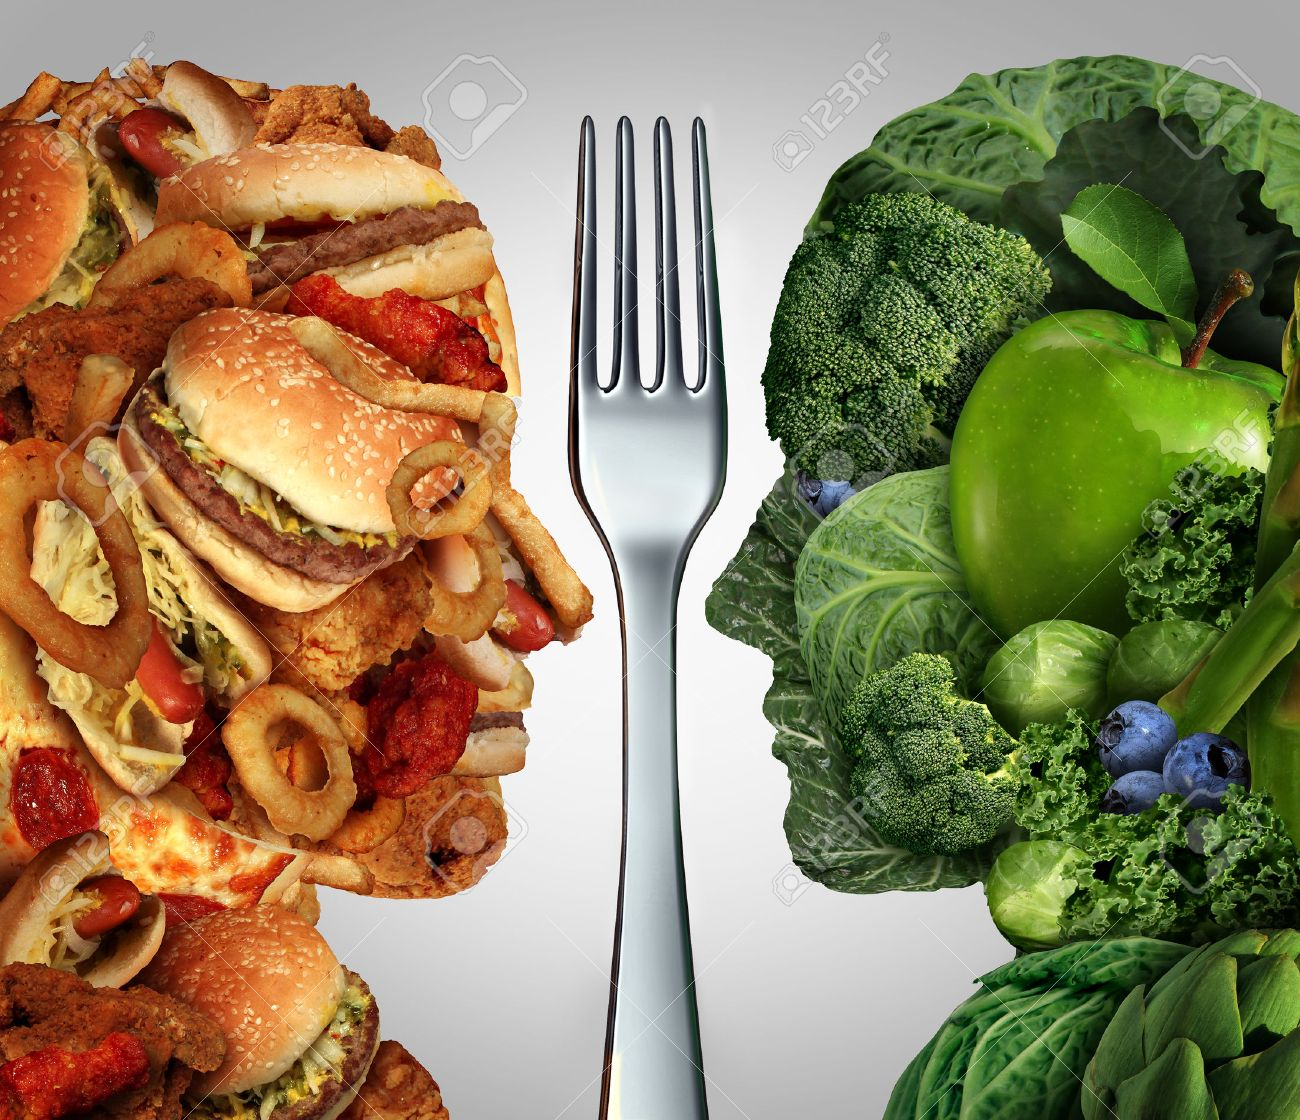 Nutrition Decision Concept And Diet Choices Dilemma Between Healthy Good  Fresh Fruit And Vegetables Or Greasy